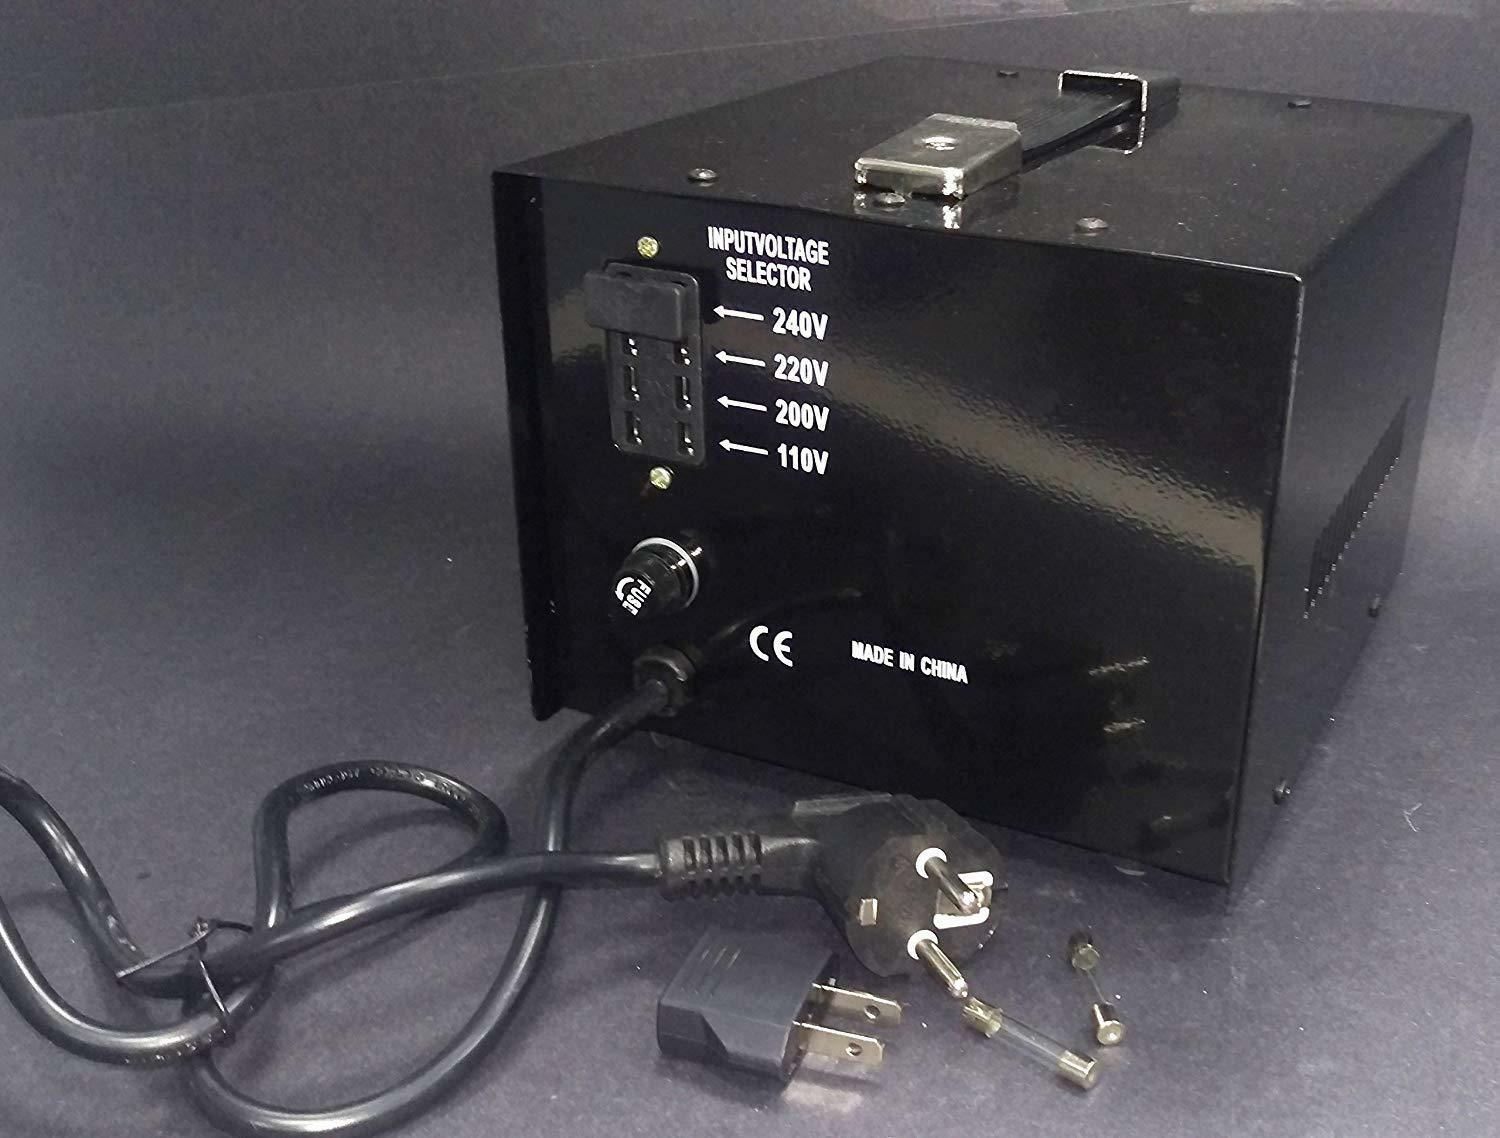 1000 watt Step Up Step Down Voltage Transformer Converter With Fuse Protection -